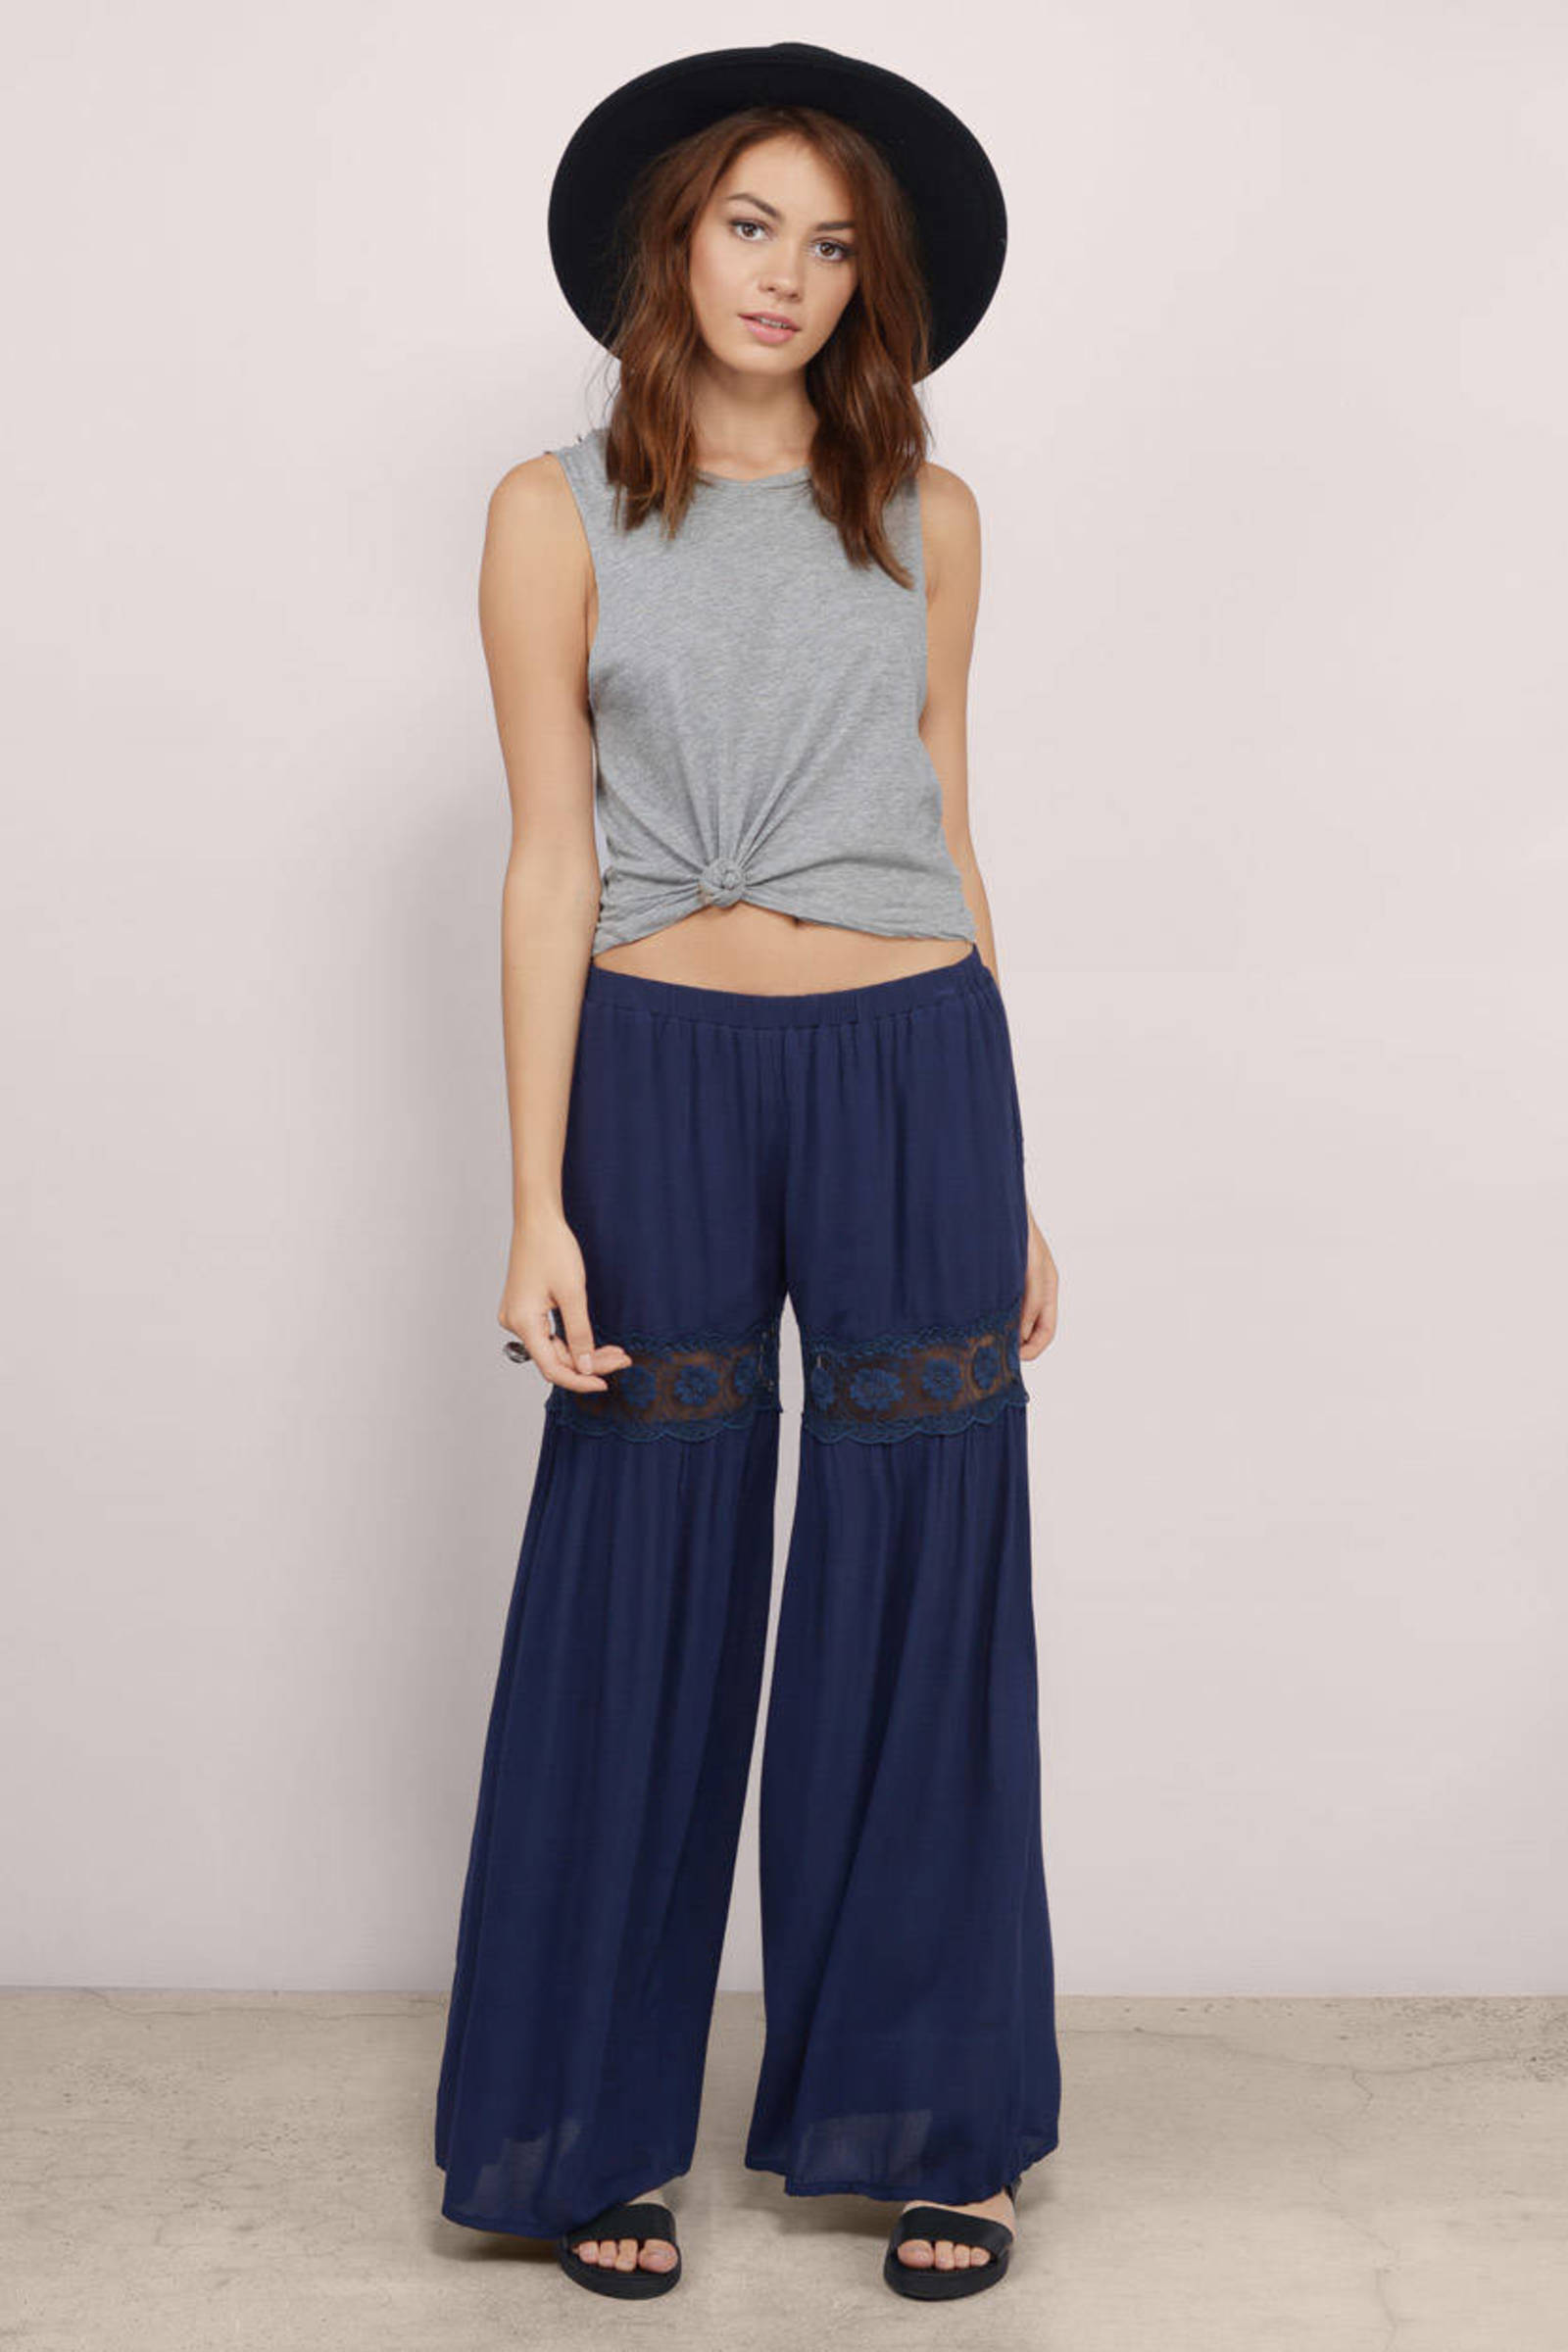 Navy Pants - Blue Pants - Wide Leg Pants - $9.00